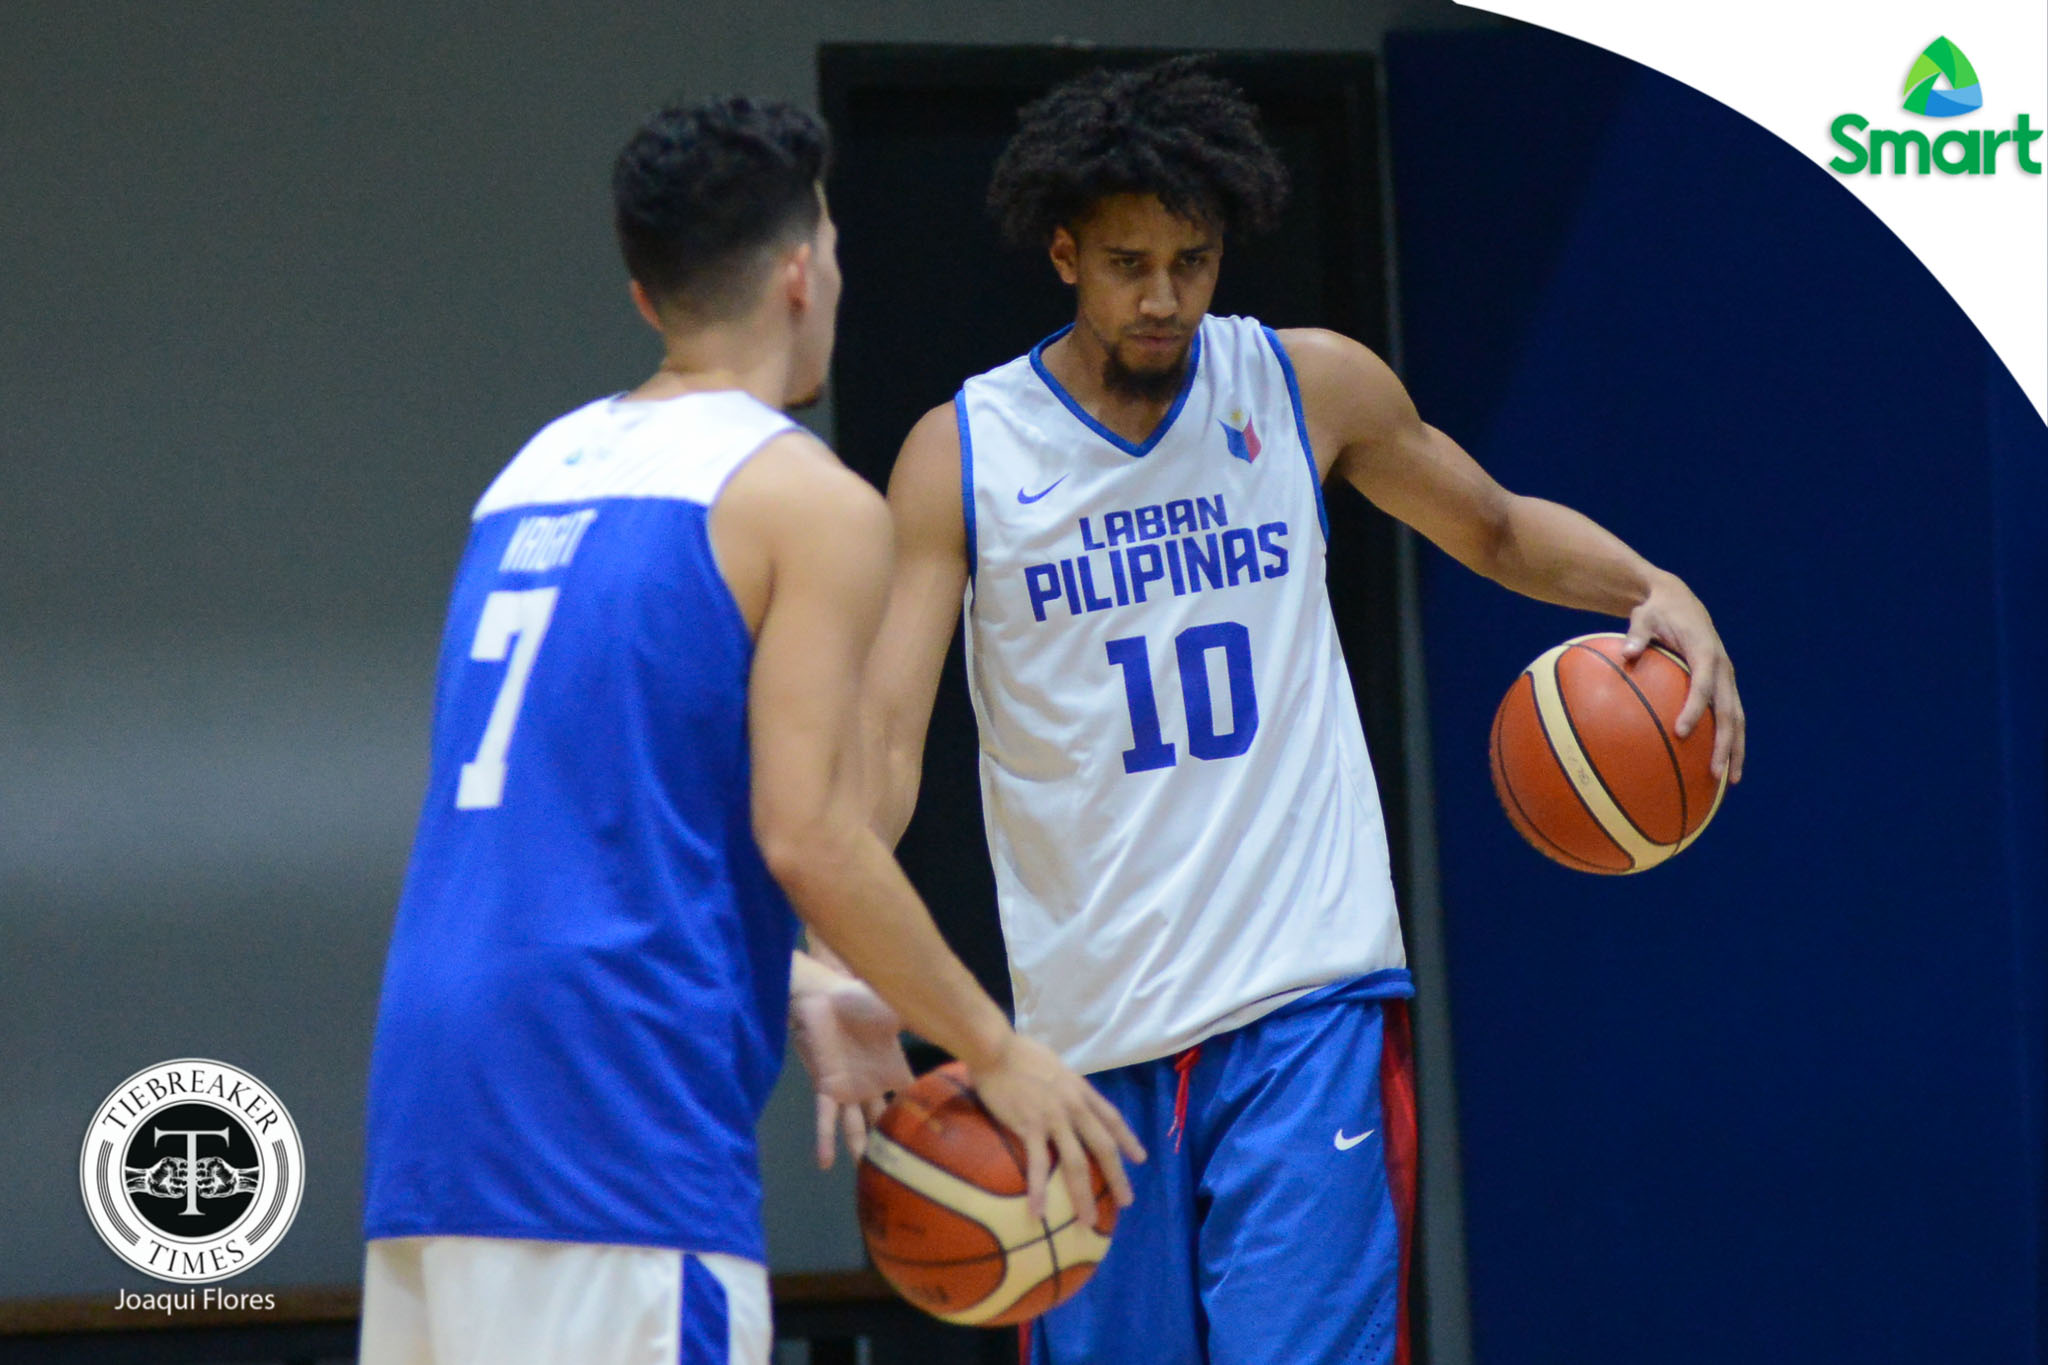 Philippine Sports News - Tiebreaker Times 60 seconds with SMART Gilas Pilipinas' Gabe Norwood 2019 FIBA World Cup Qualifiers Basketball Gilas Pilipinas News  Gabe Norwood 2019 FIBA World Cup Qualifiers Group B